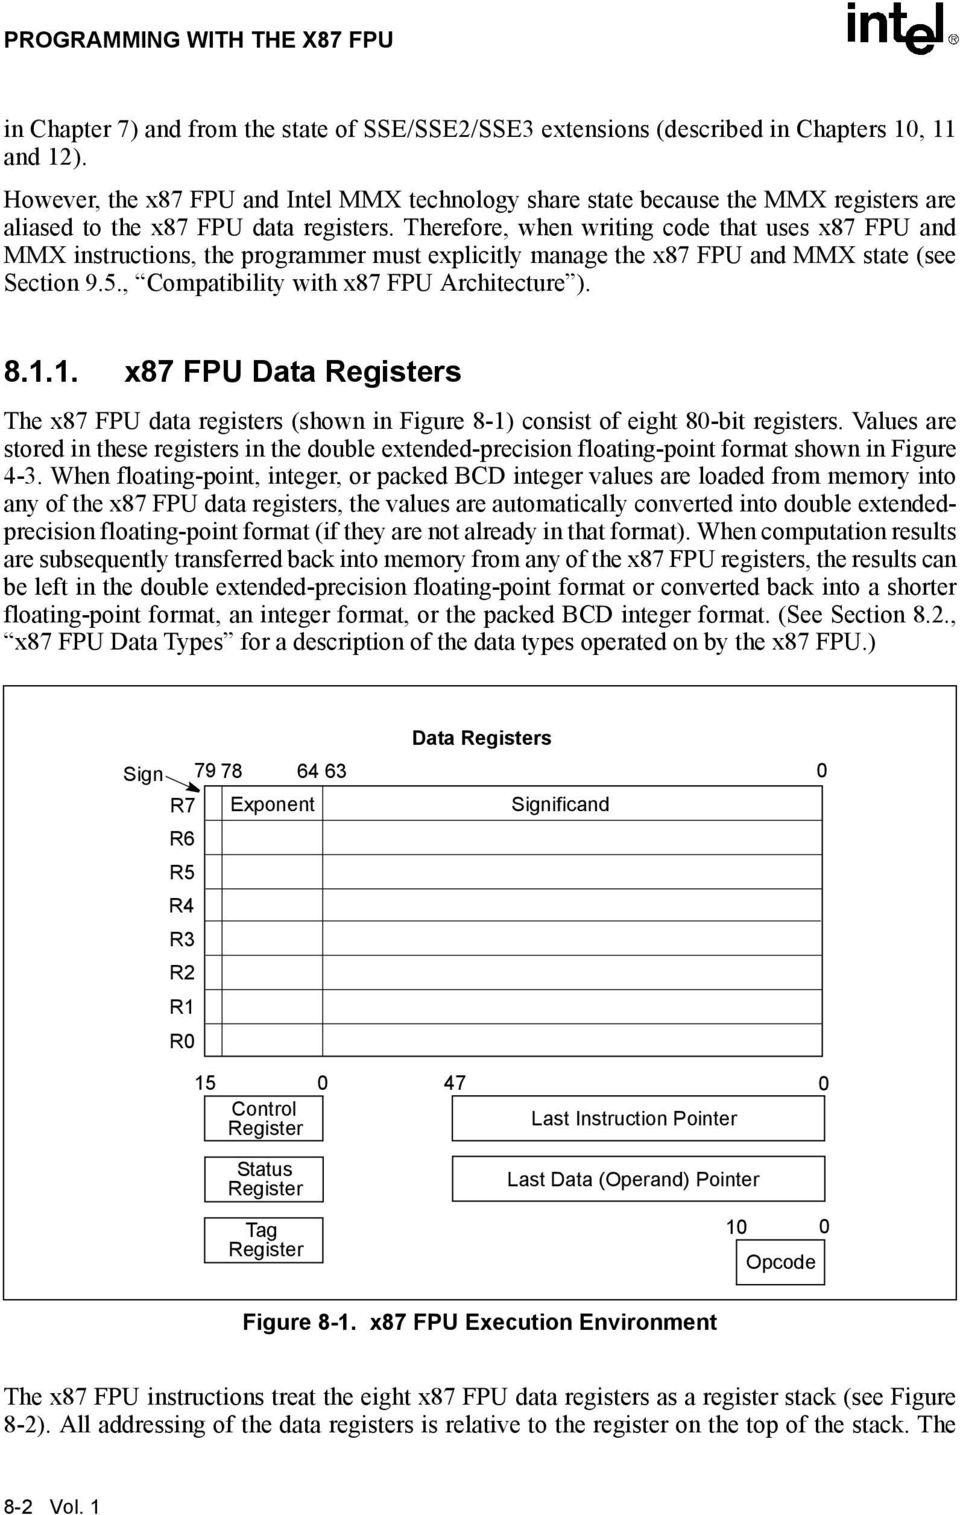 FPU Architecture ) 811 x87 FPU Data Registers The x87 FPU data registers (shown in Figure 8-1) consist of eight 8-bit registers Values are stored in these registers in the double extended-precision